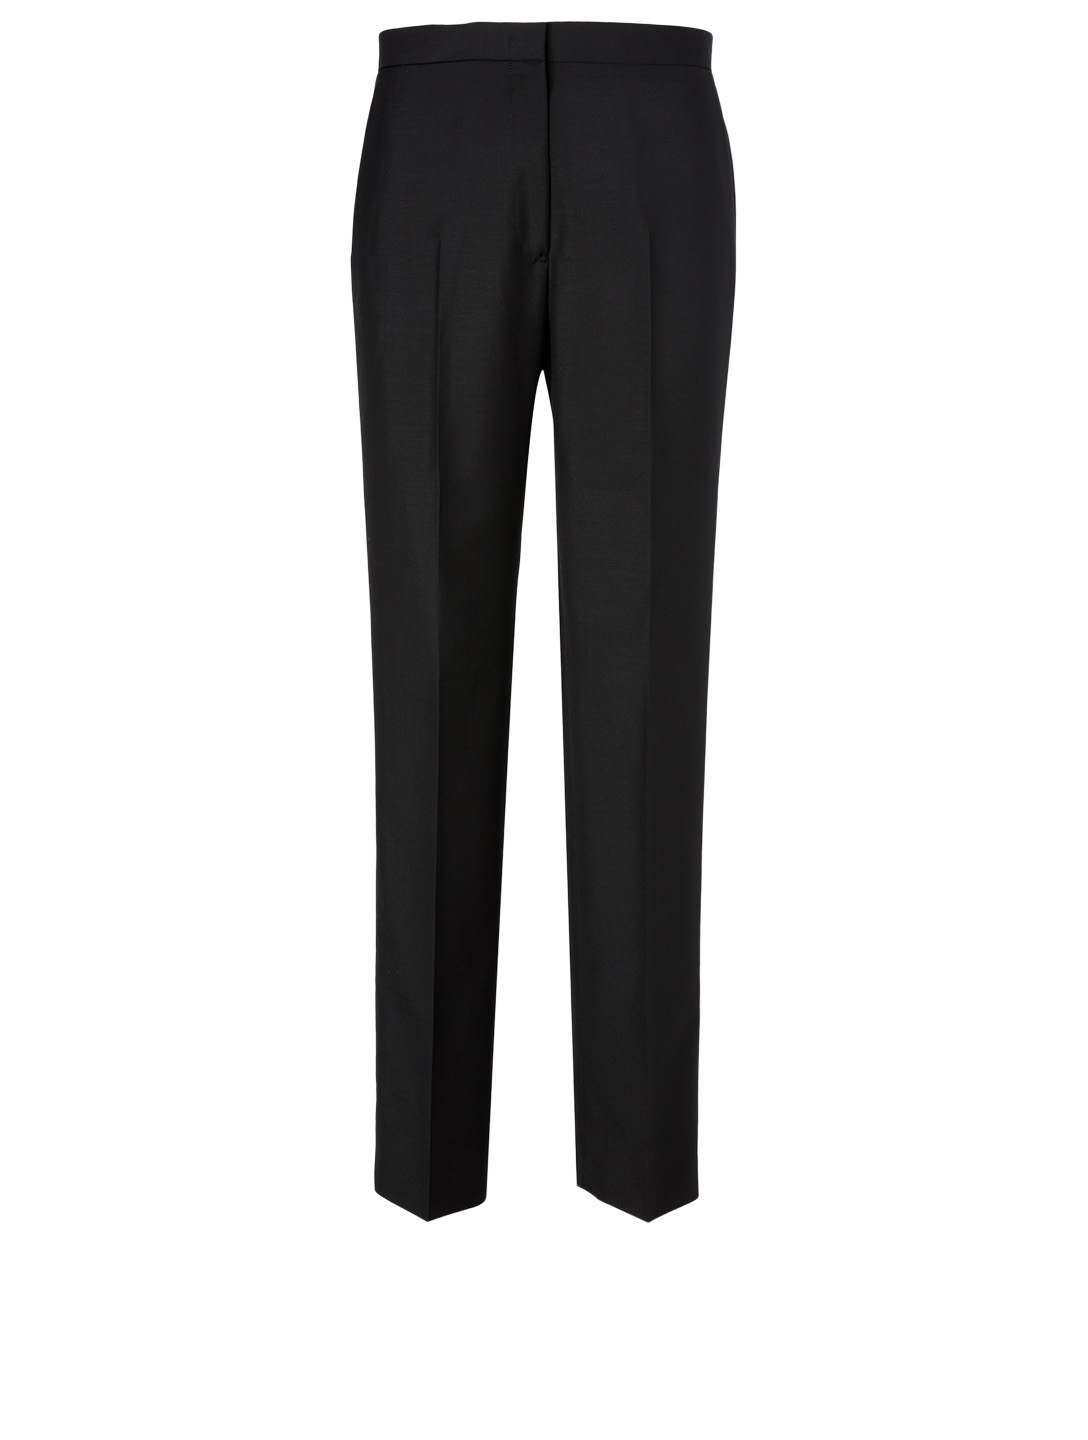 JIL SANDER Wool-Blend Slim Pants Women's Black